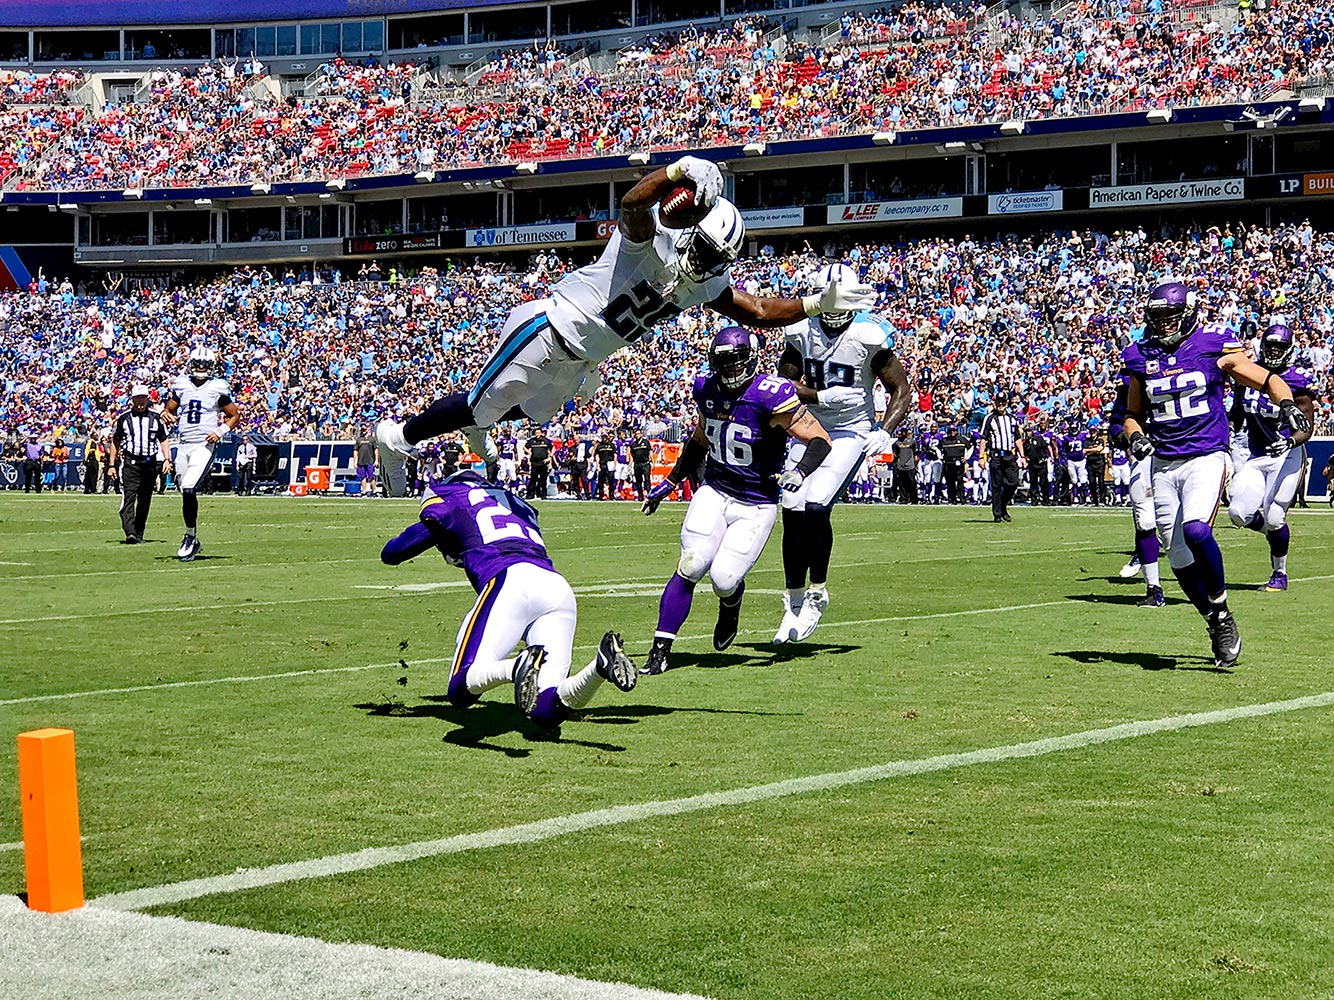 Link: iPhone 7 Plus Photos from the Titans-Vikings Game